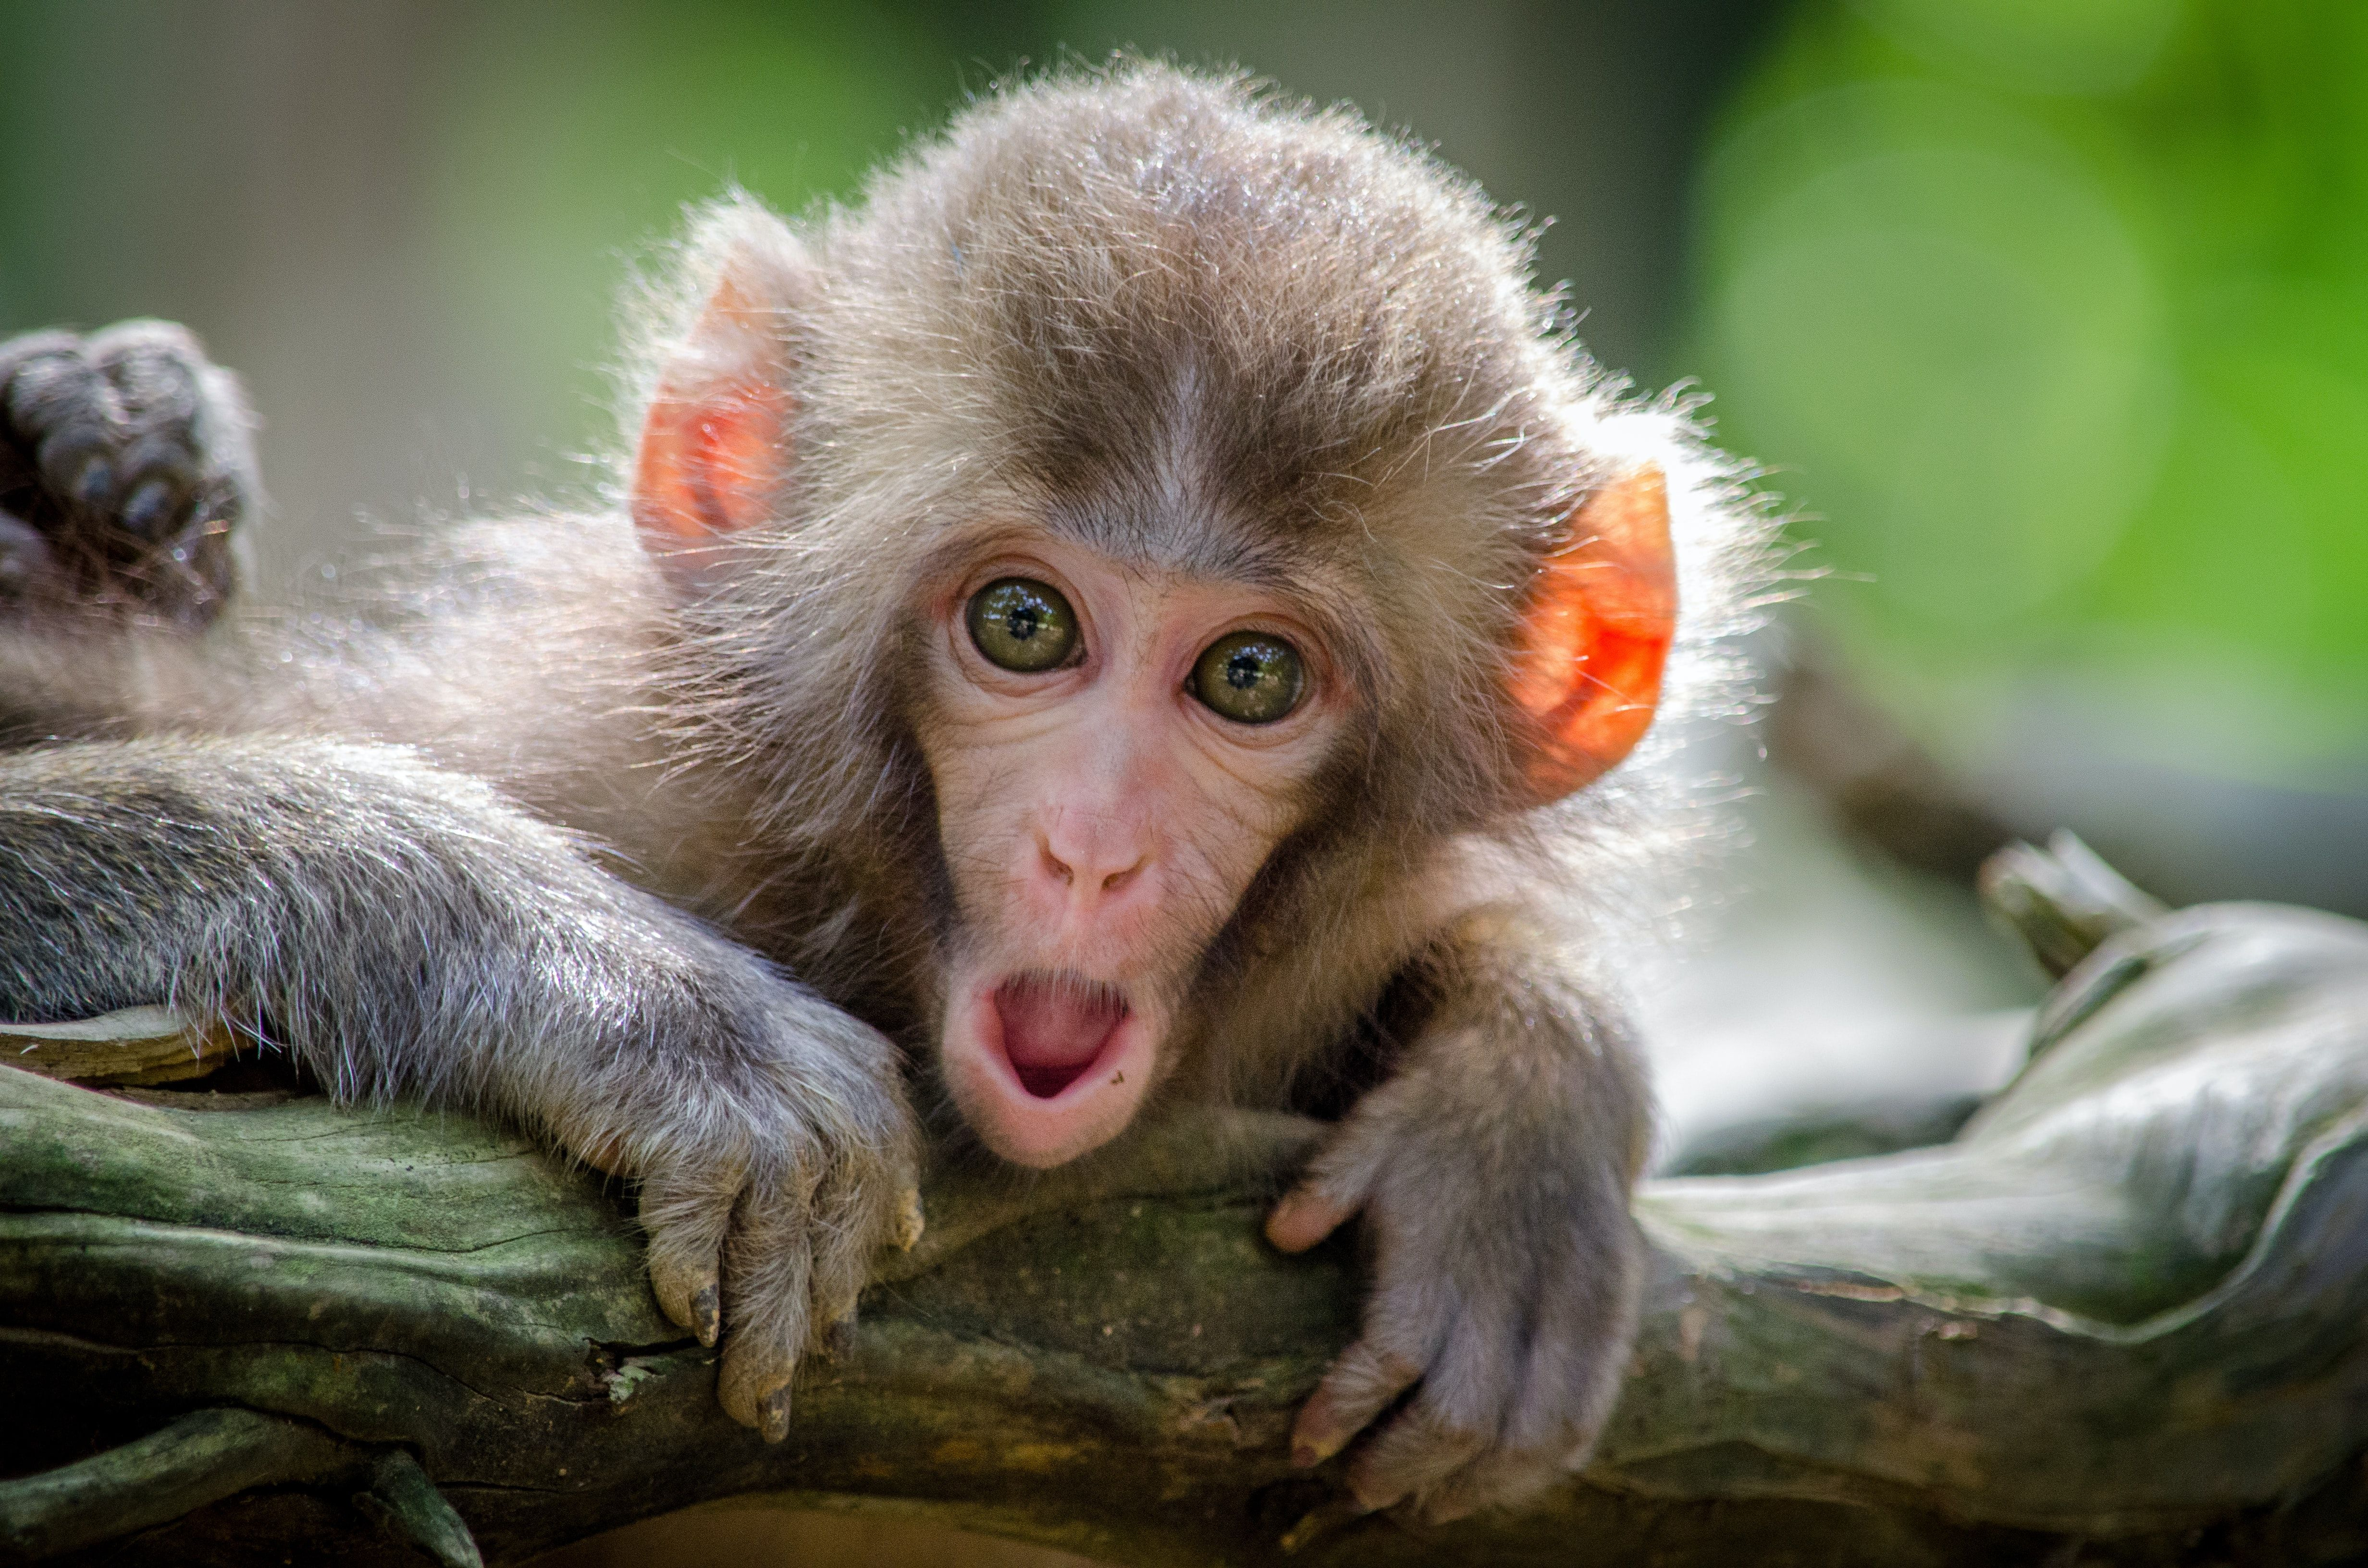 Excited monkey